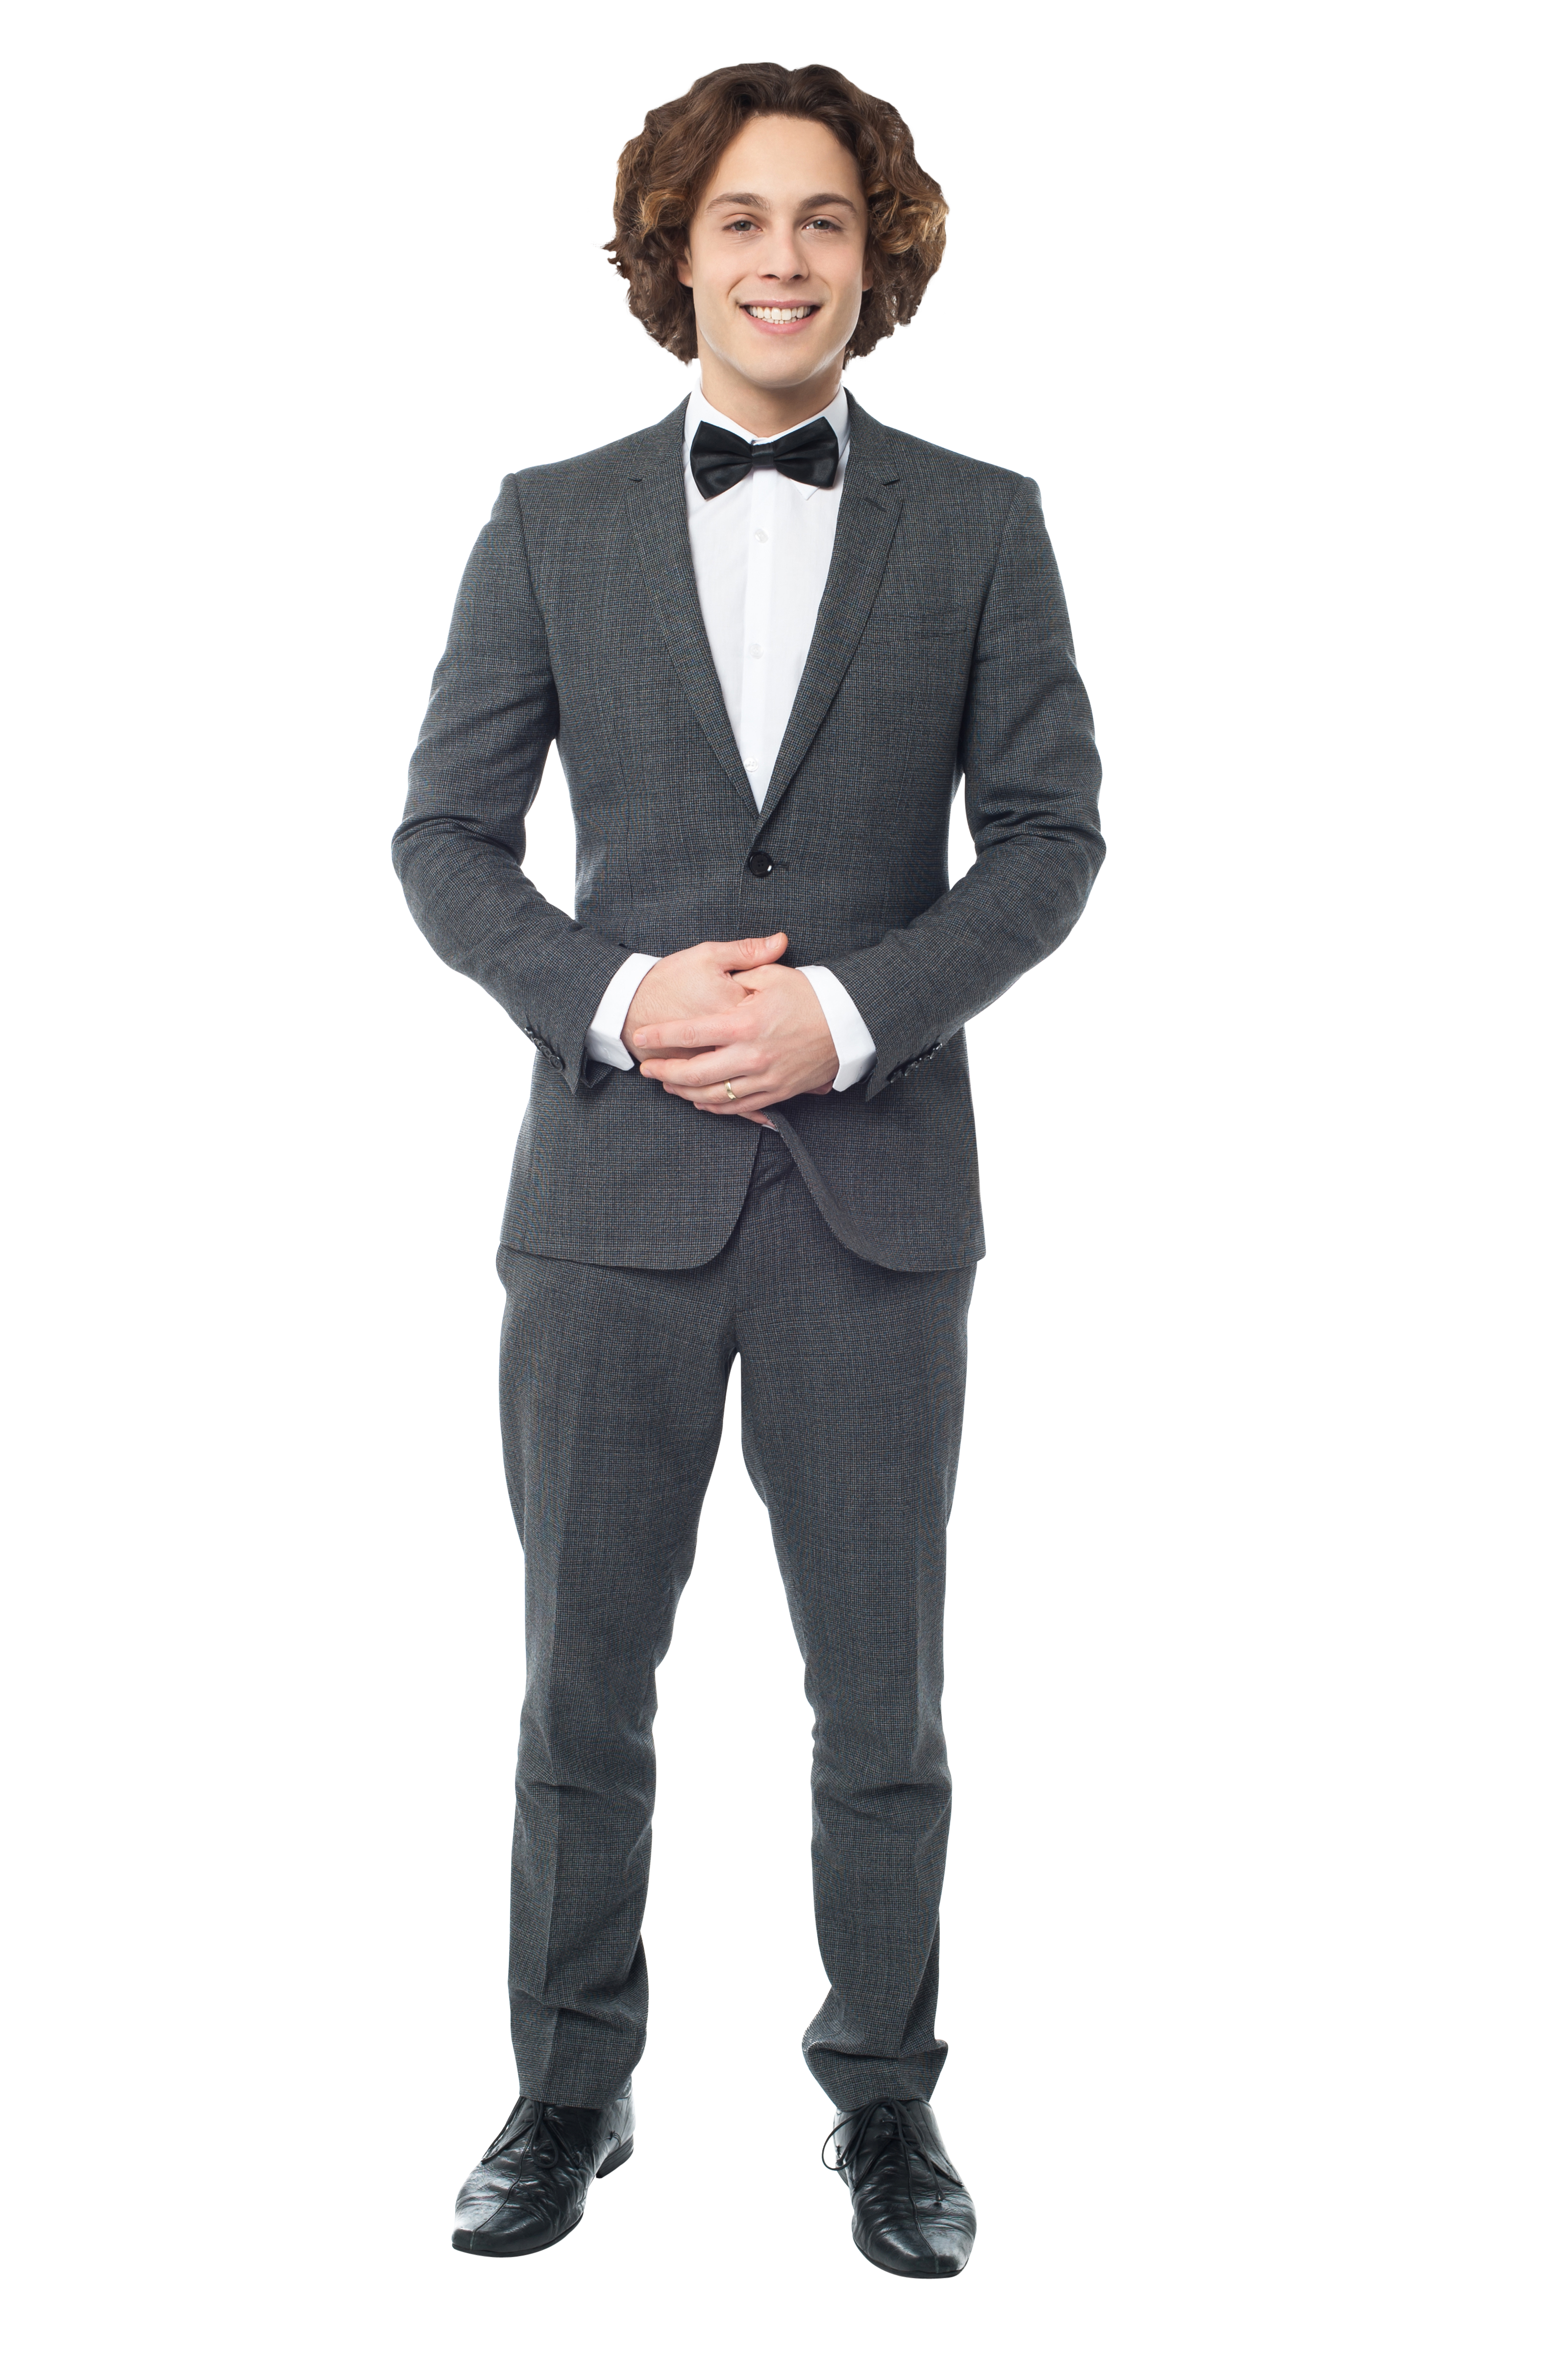 Guy in a suit png. Men image purepng free